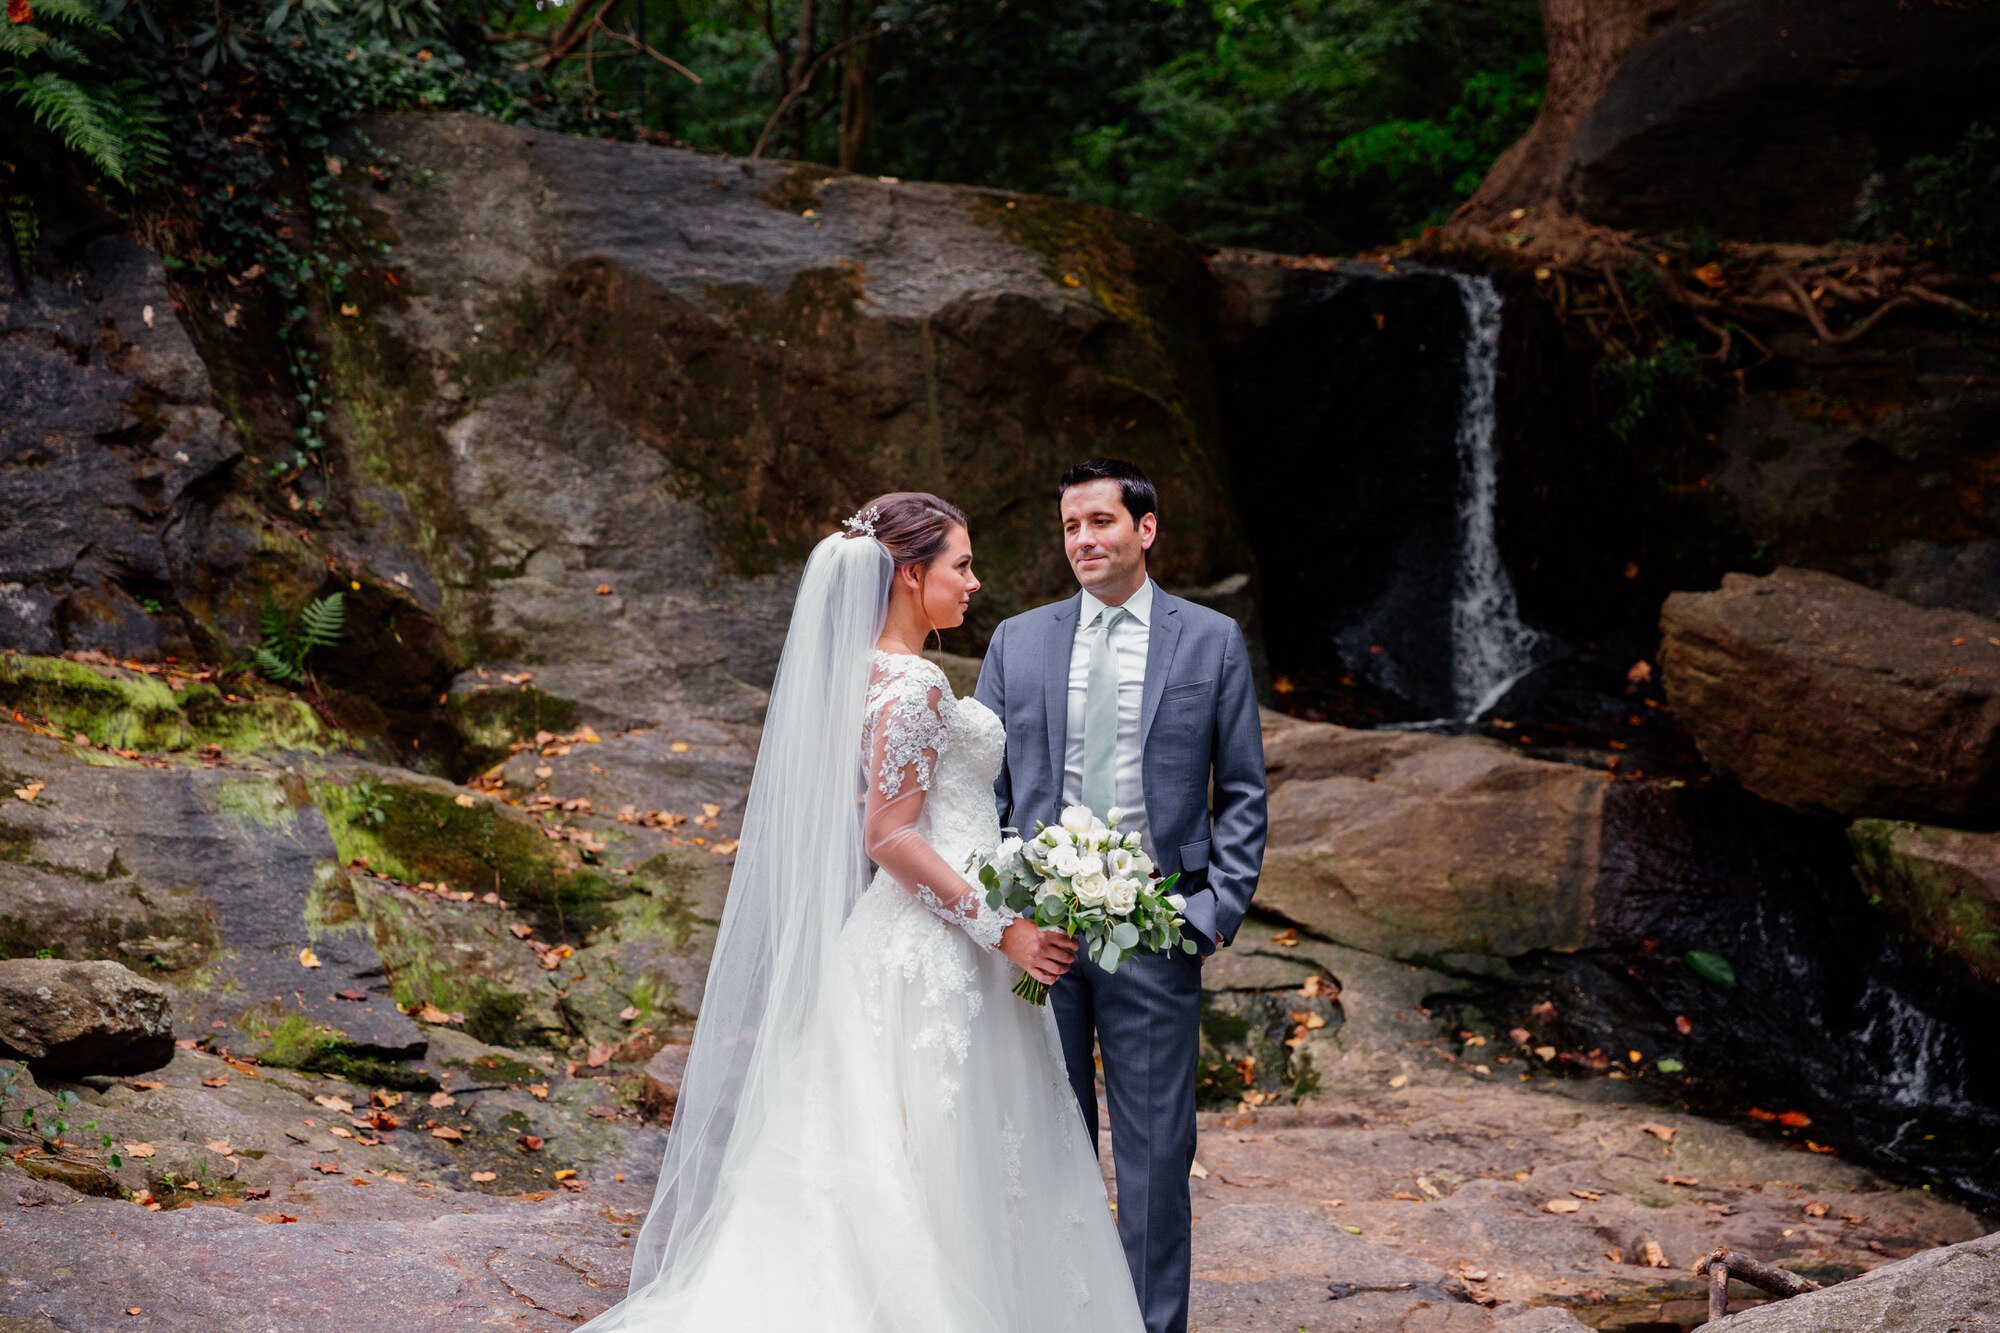 twigs-tempietto-wedding-greenville-downtown-291.JPG